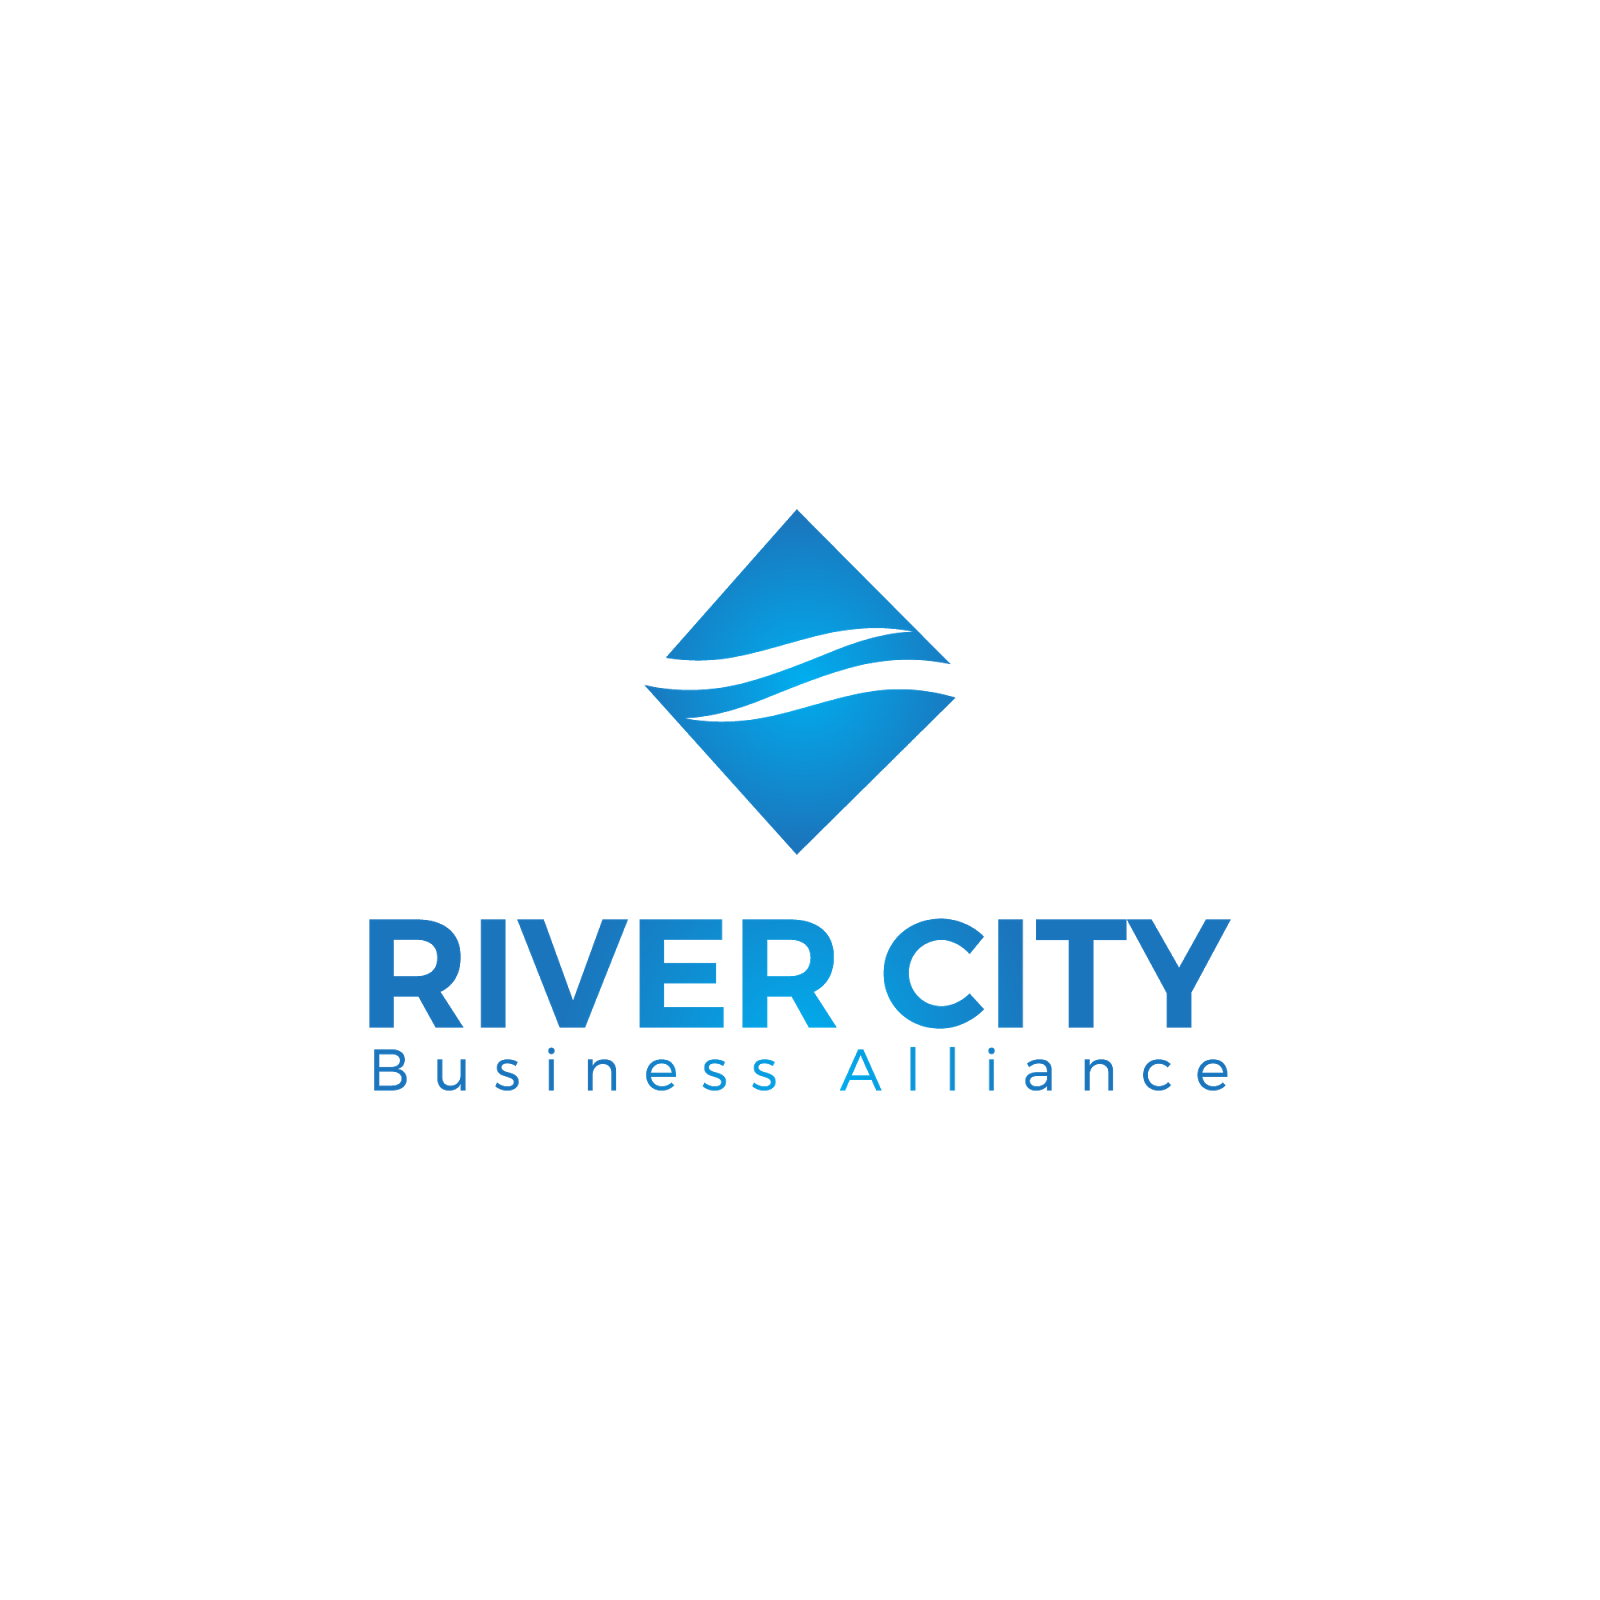 River City Business Alliance